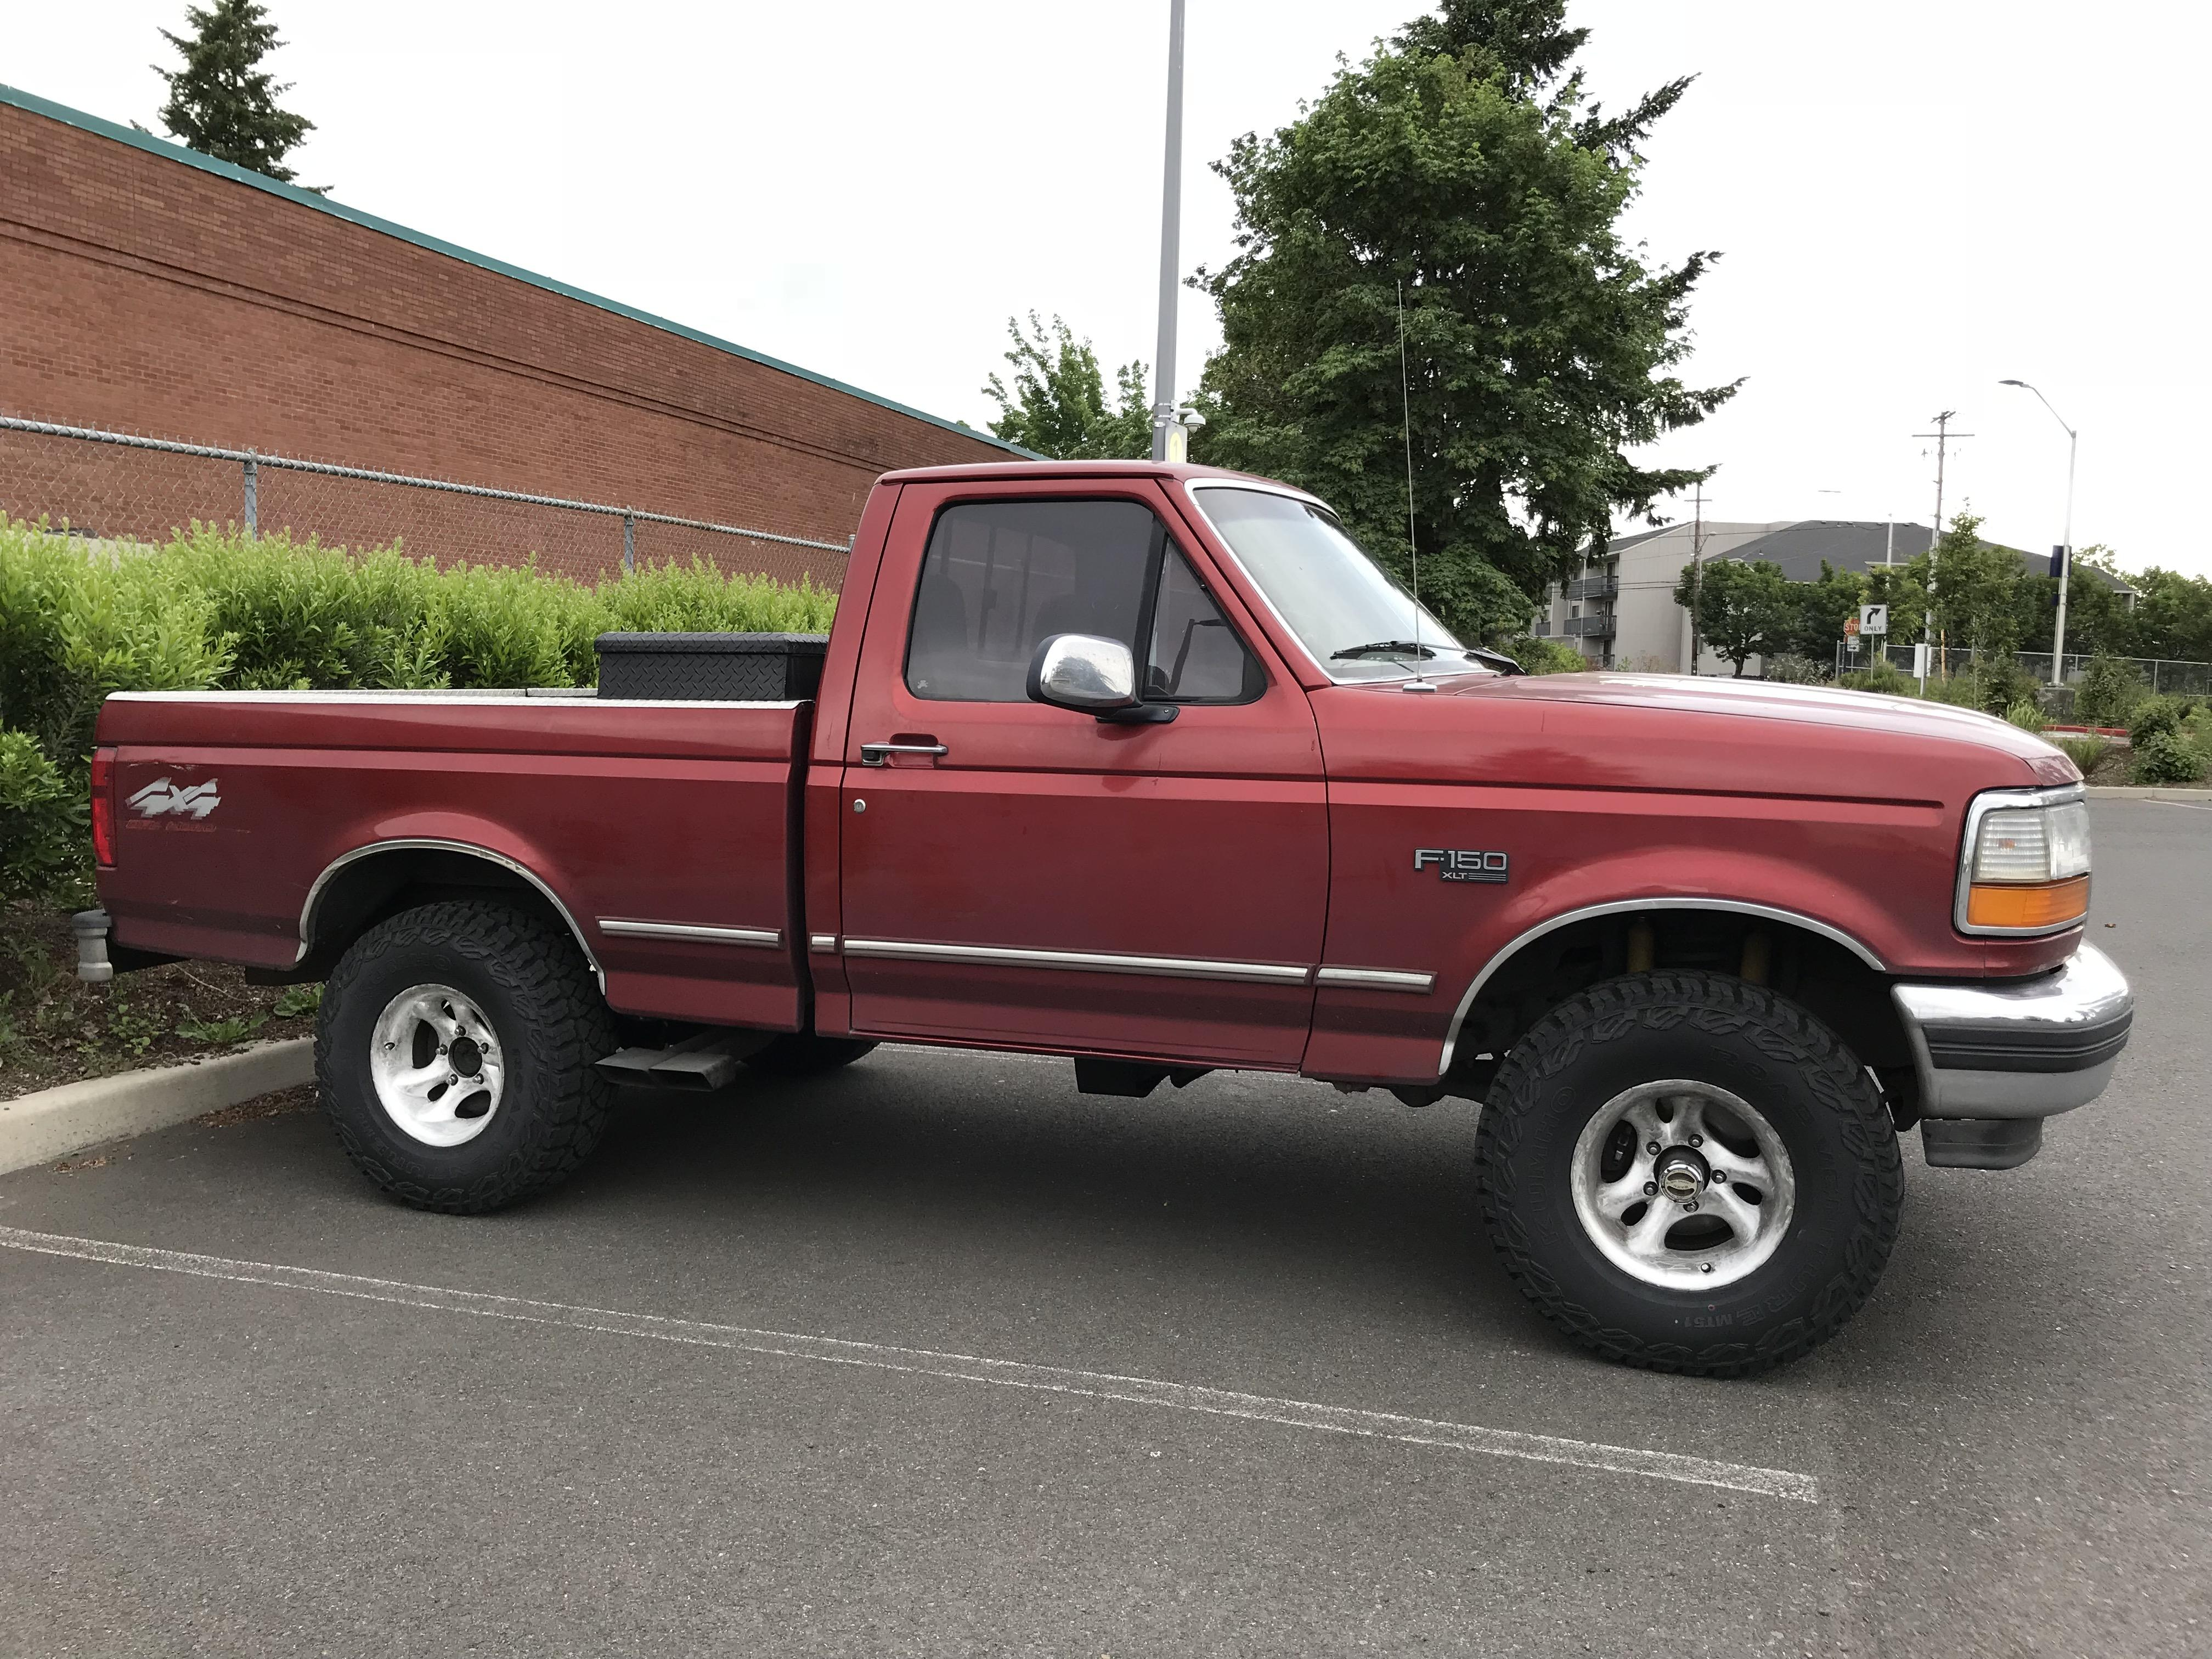 Ford F150 4x4 Work In Progress 1996 Ford F 150 Xlt 4x4 Off Road 351w With Warn